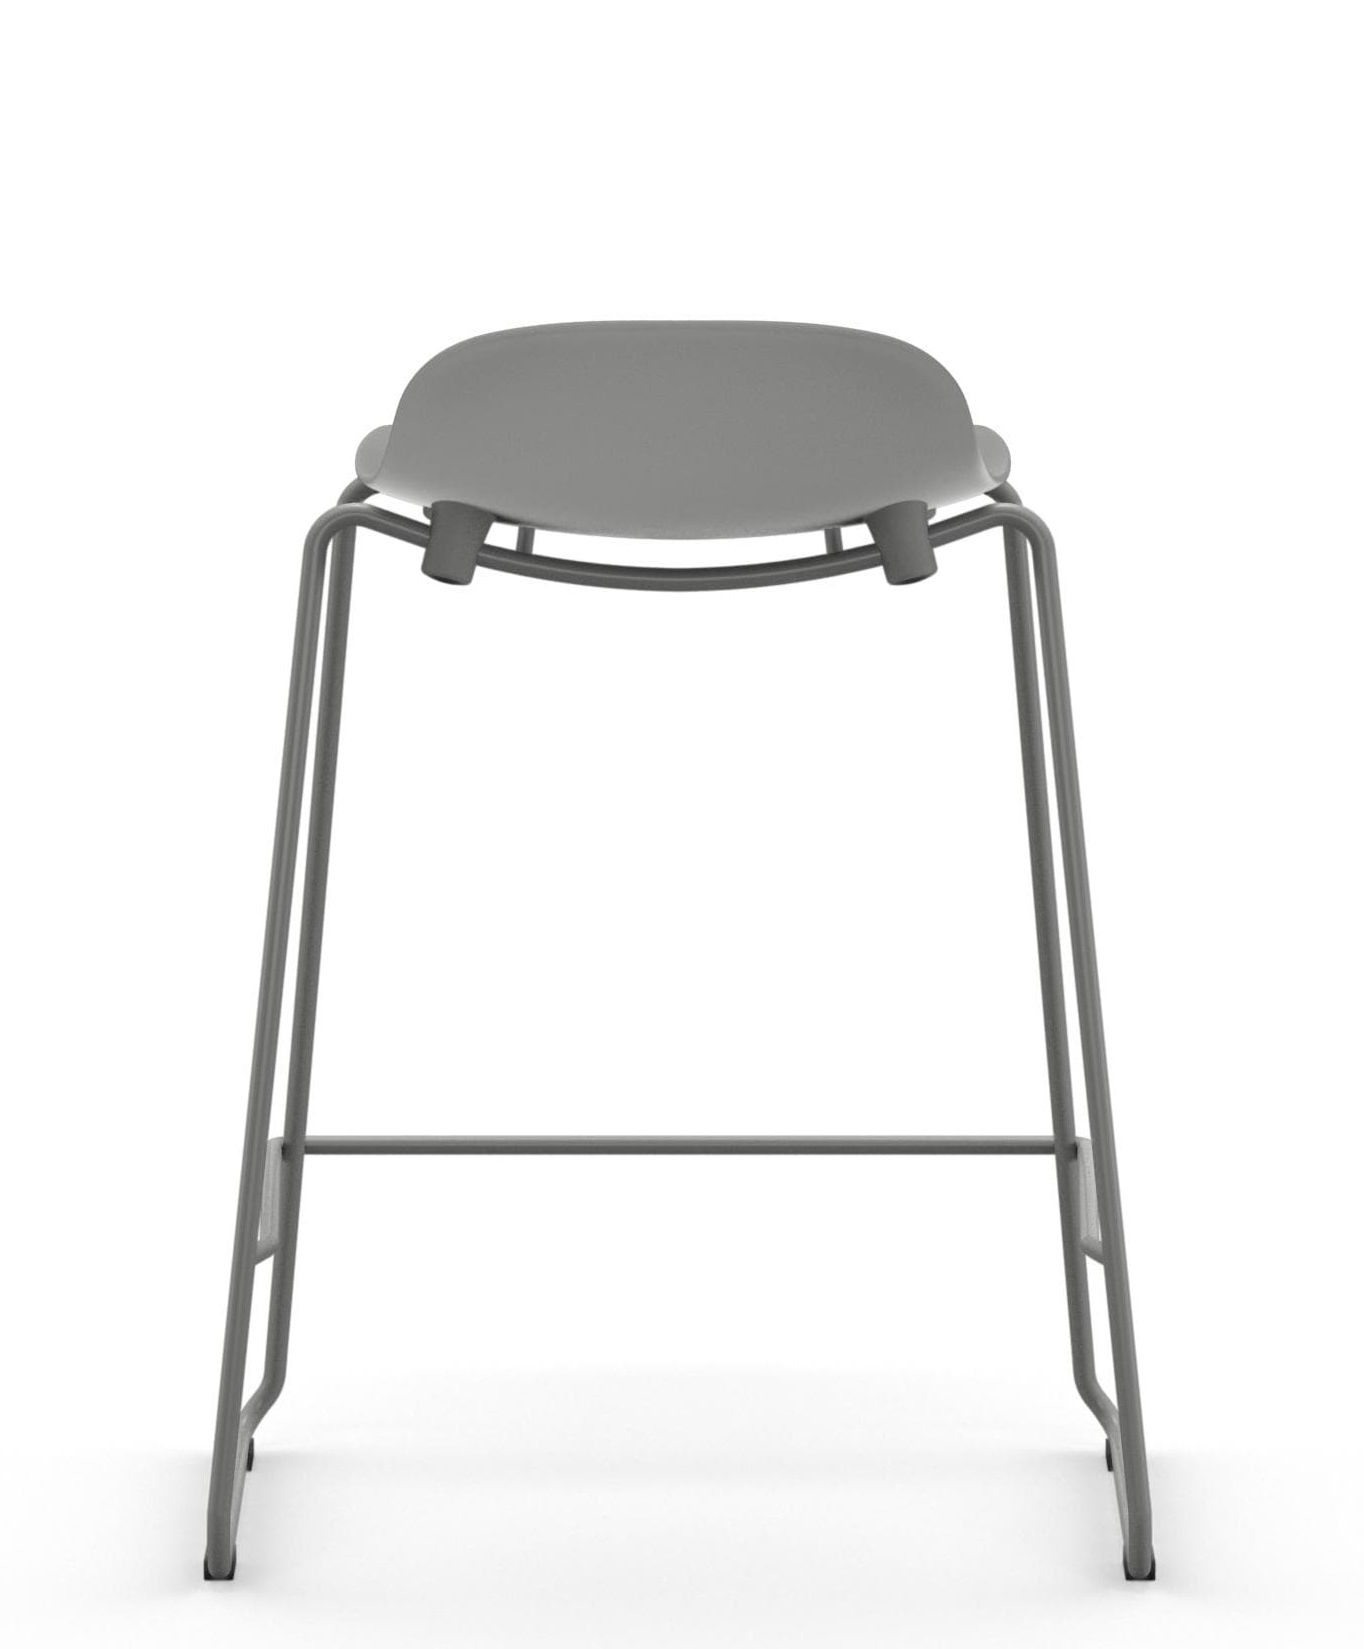 tabouret de bar form empilable pied m tal h 65 cm gris normann copenhagen. Black Bedroom Furniture Sets. Home Design Ideas